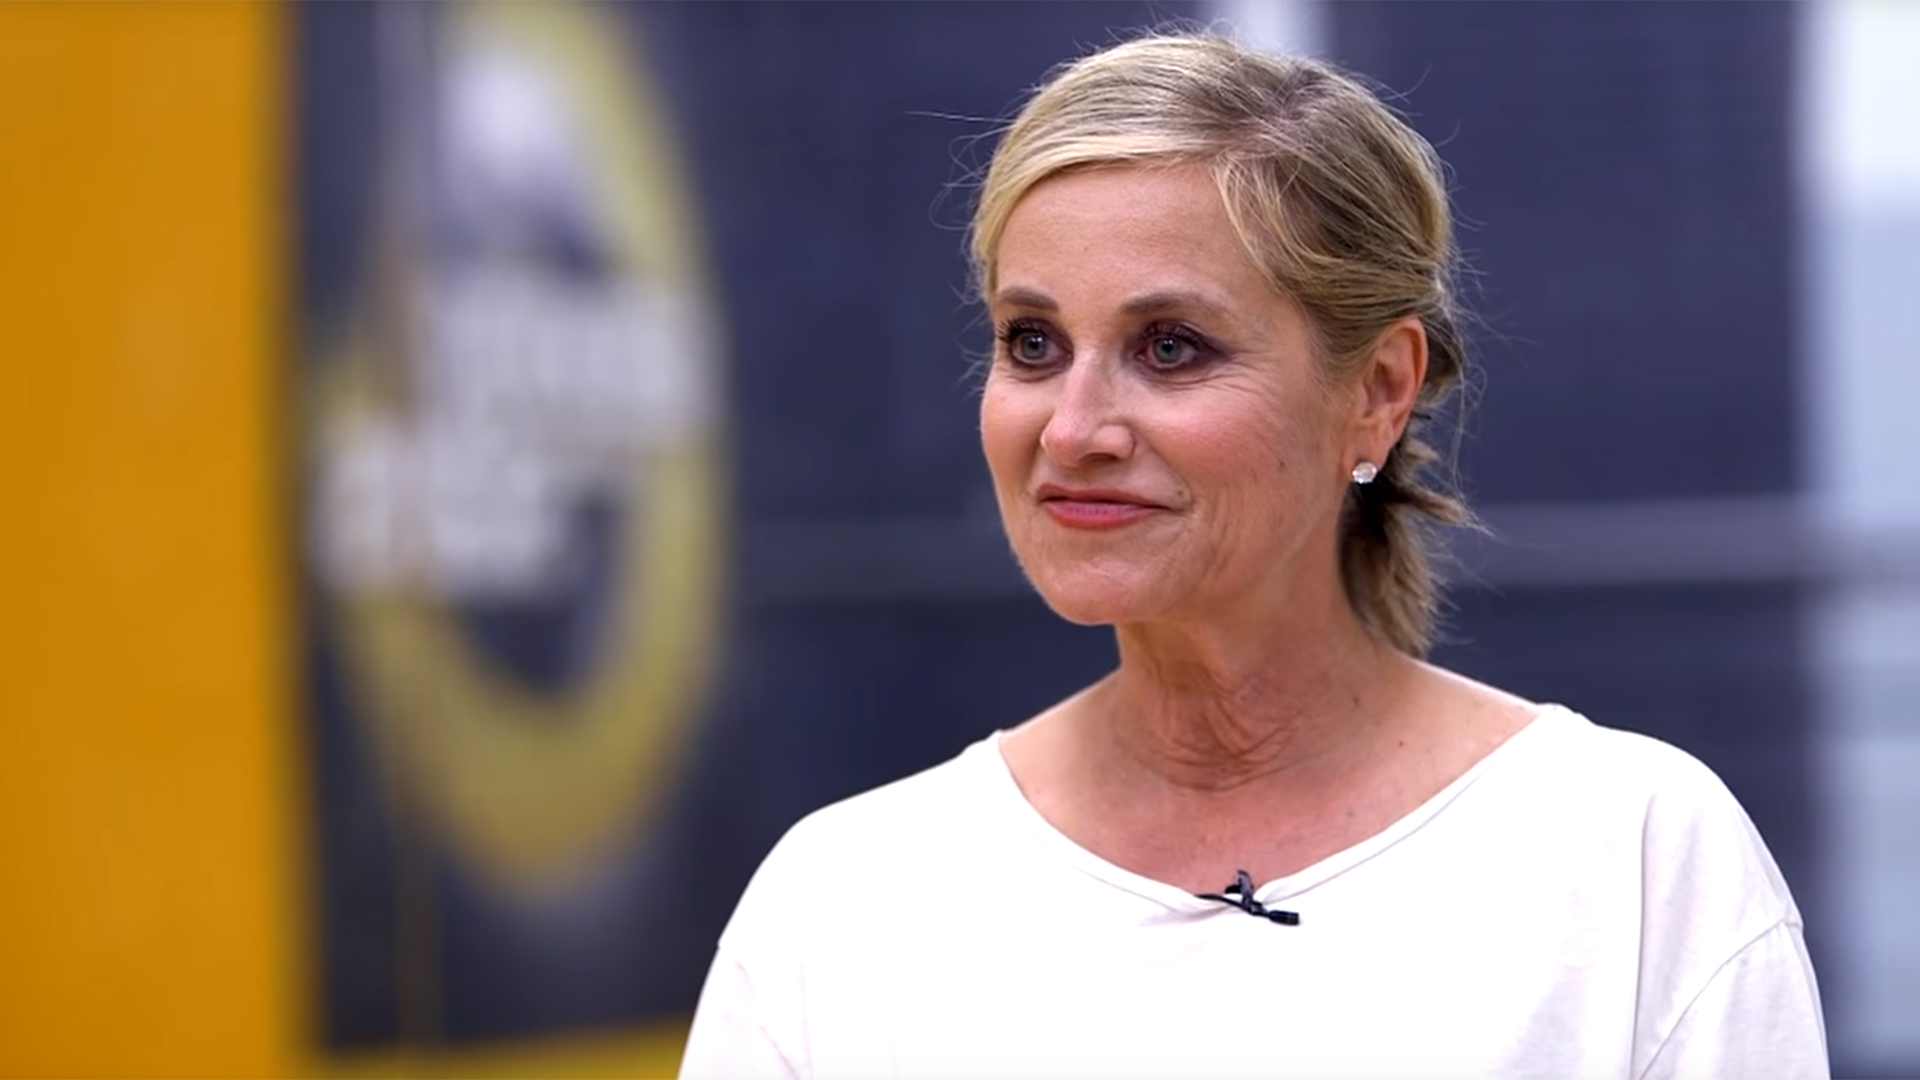 The 63-year old daughter of father (?) and mother(?) Maureen Mccormick in 2020 photo. Maureen Mccormick earned a million dollar salary - leaving the net worth at million in 2020